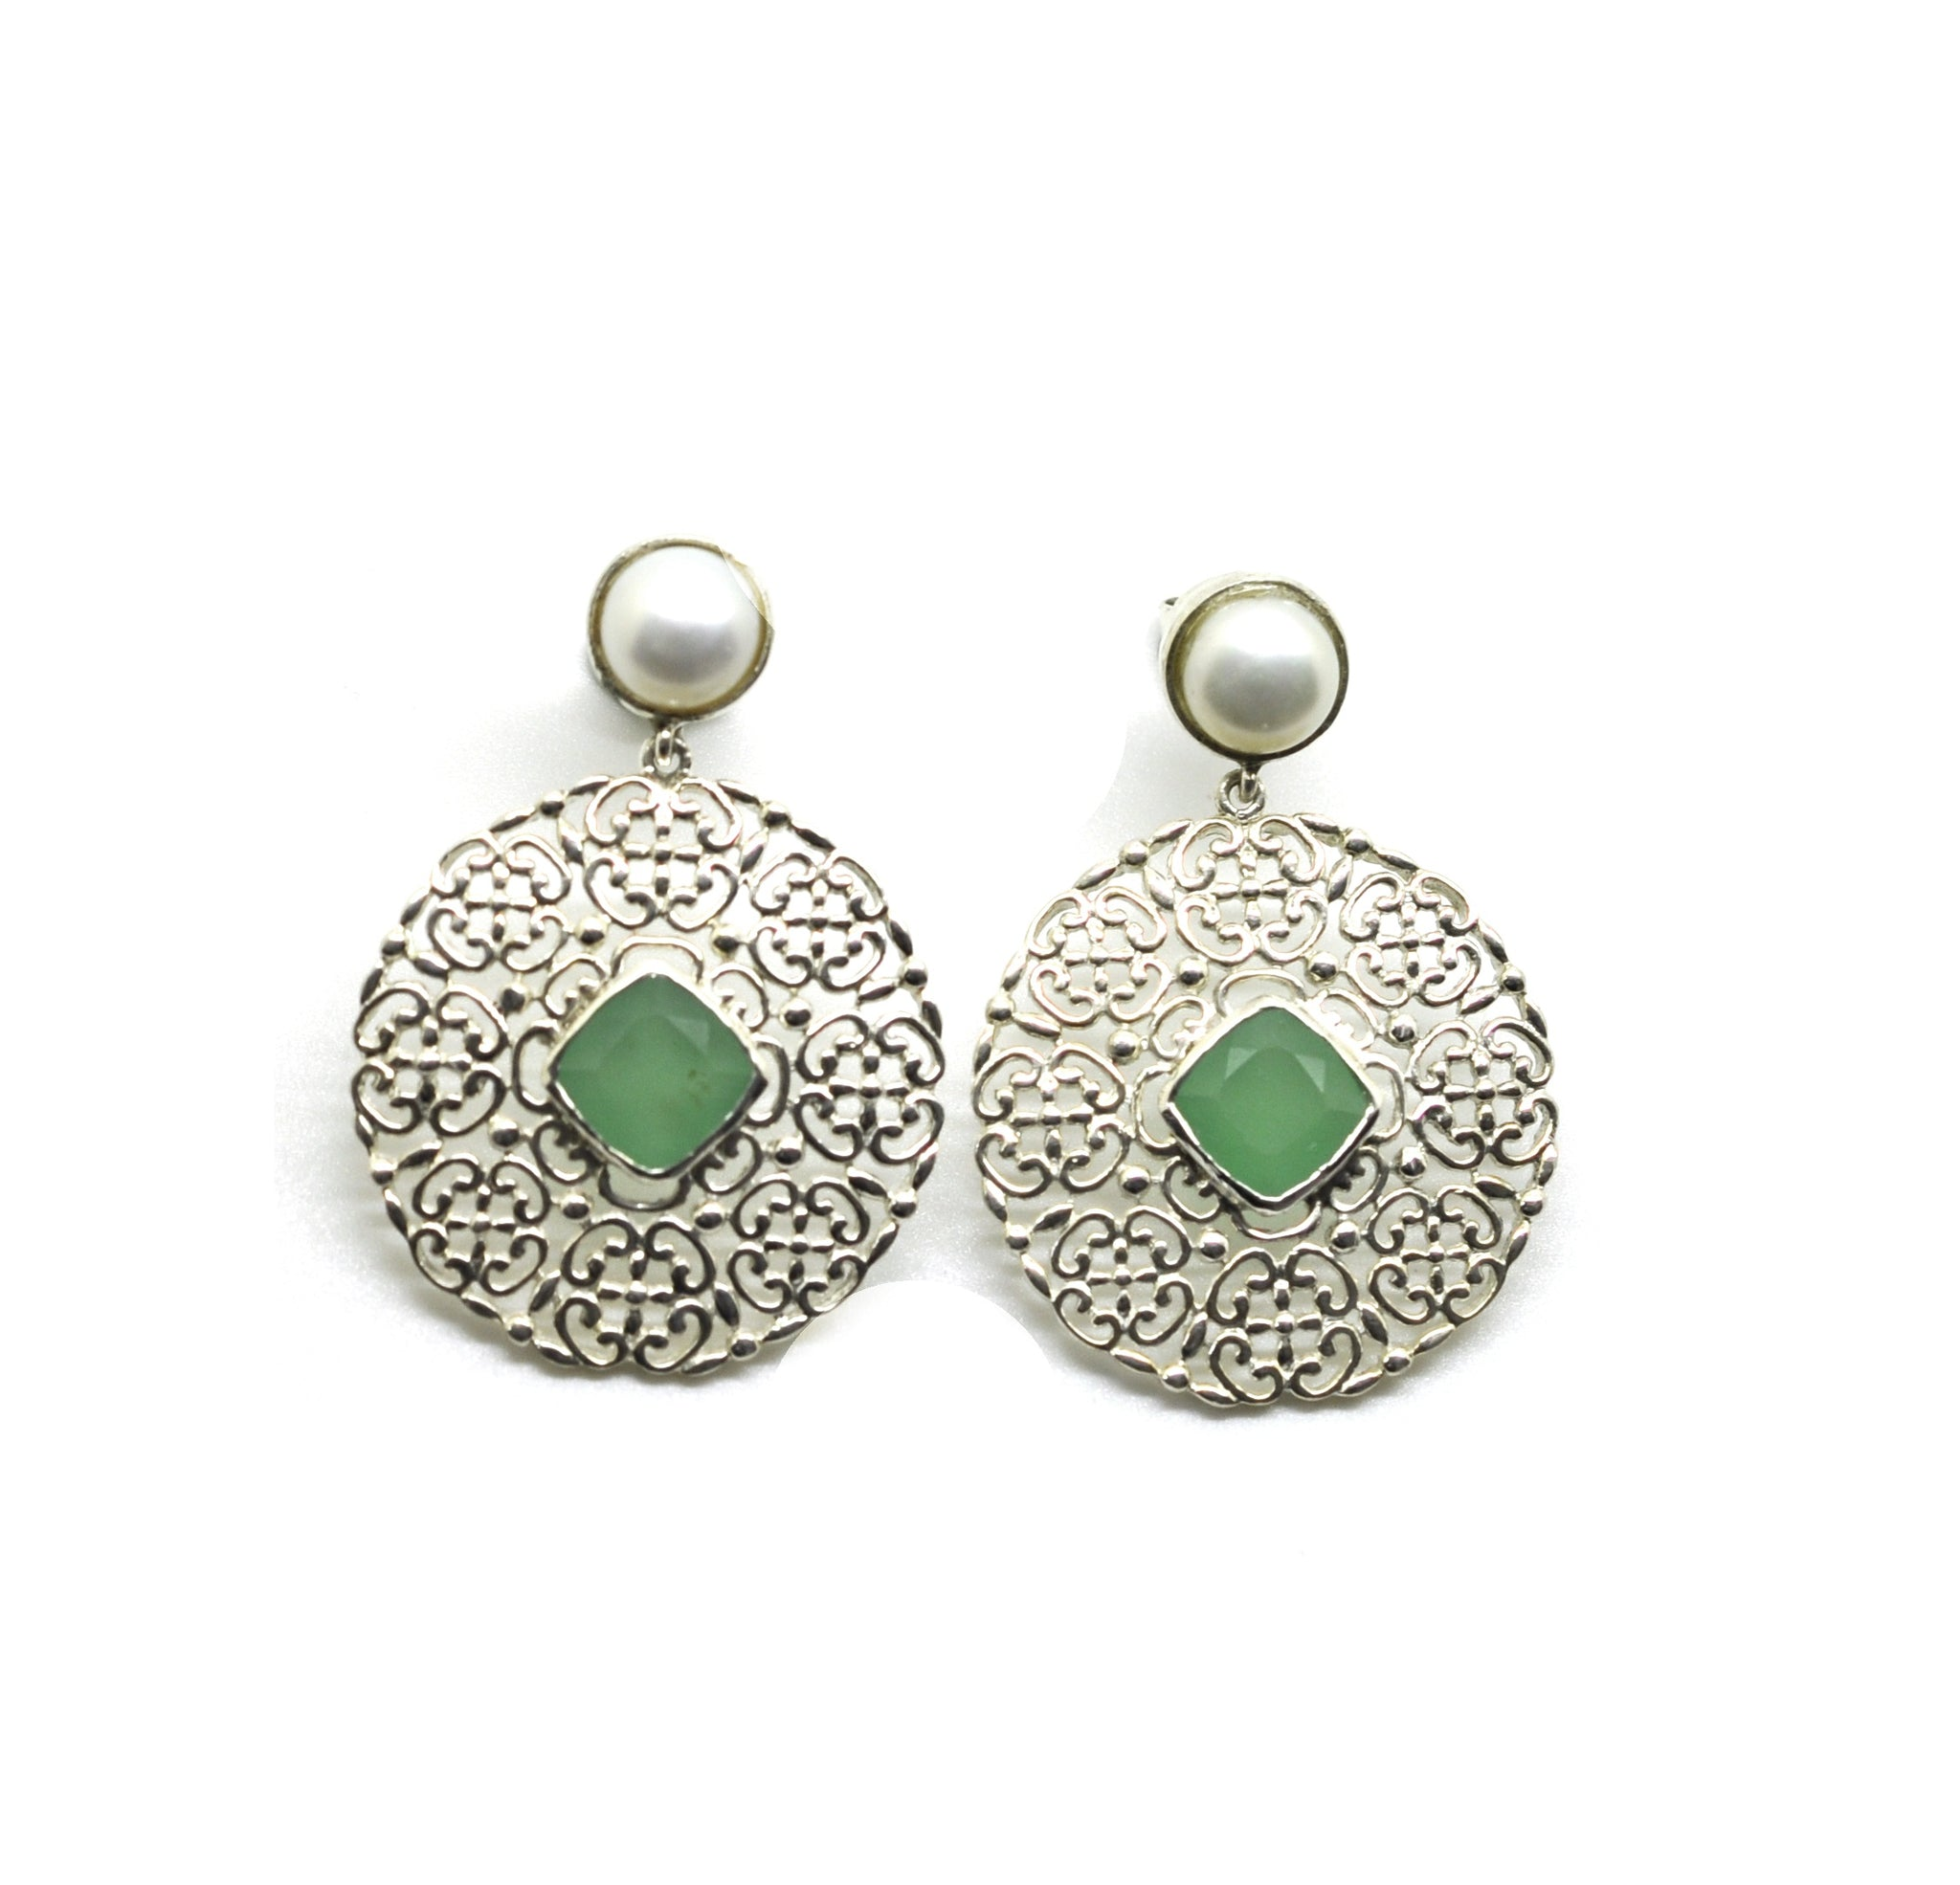 SOLD - NEW Round Filigree earring 3